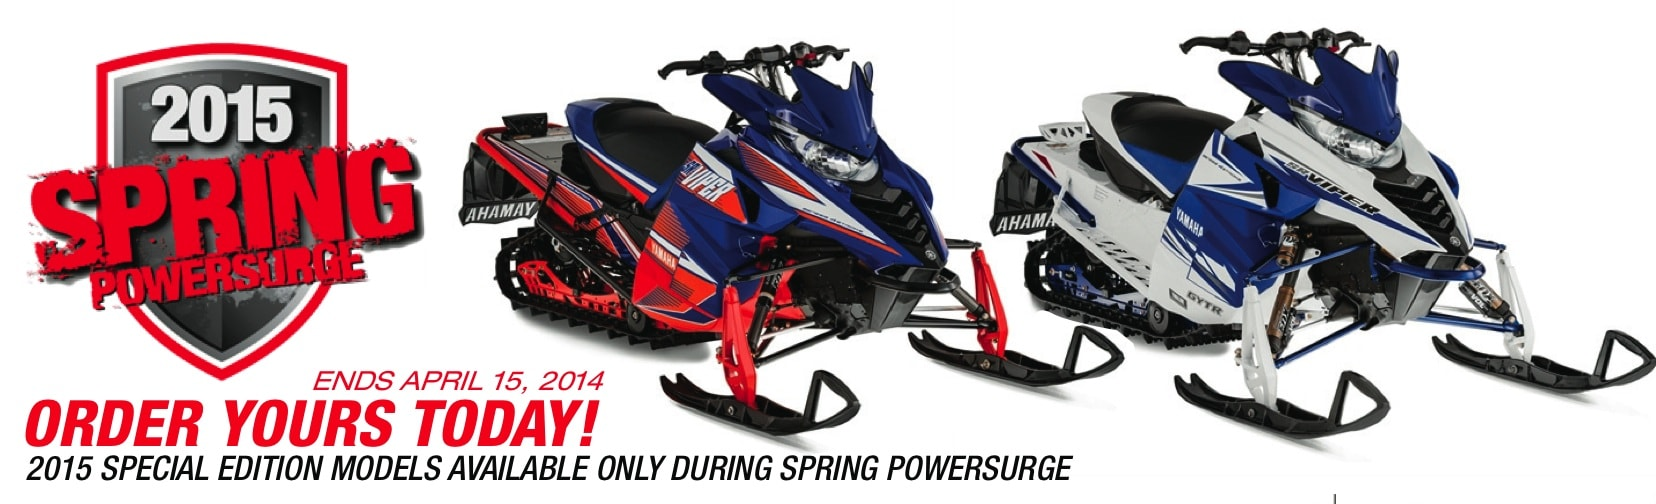 2015 SPRING POWERSURGE IS ON! HURRY, ONLY UNTIL APRIL 15TH, 2014